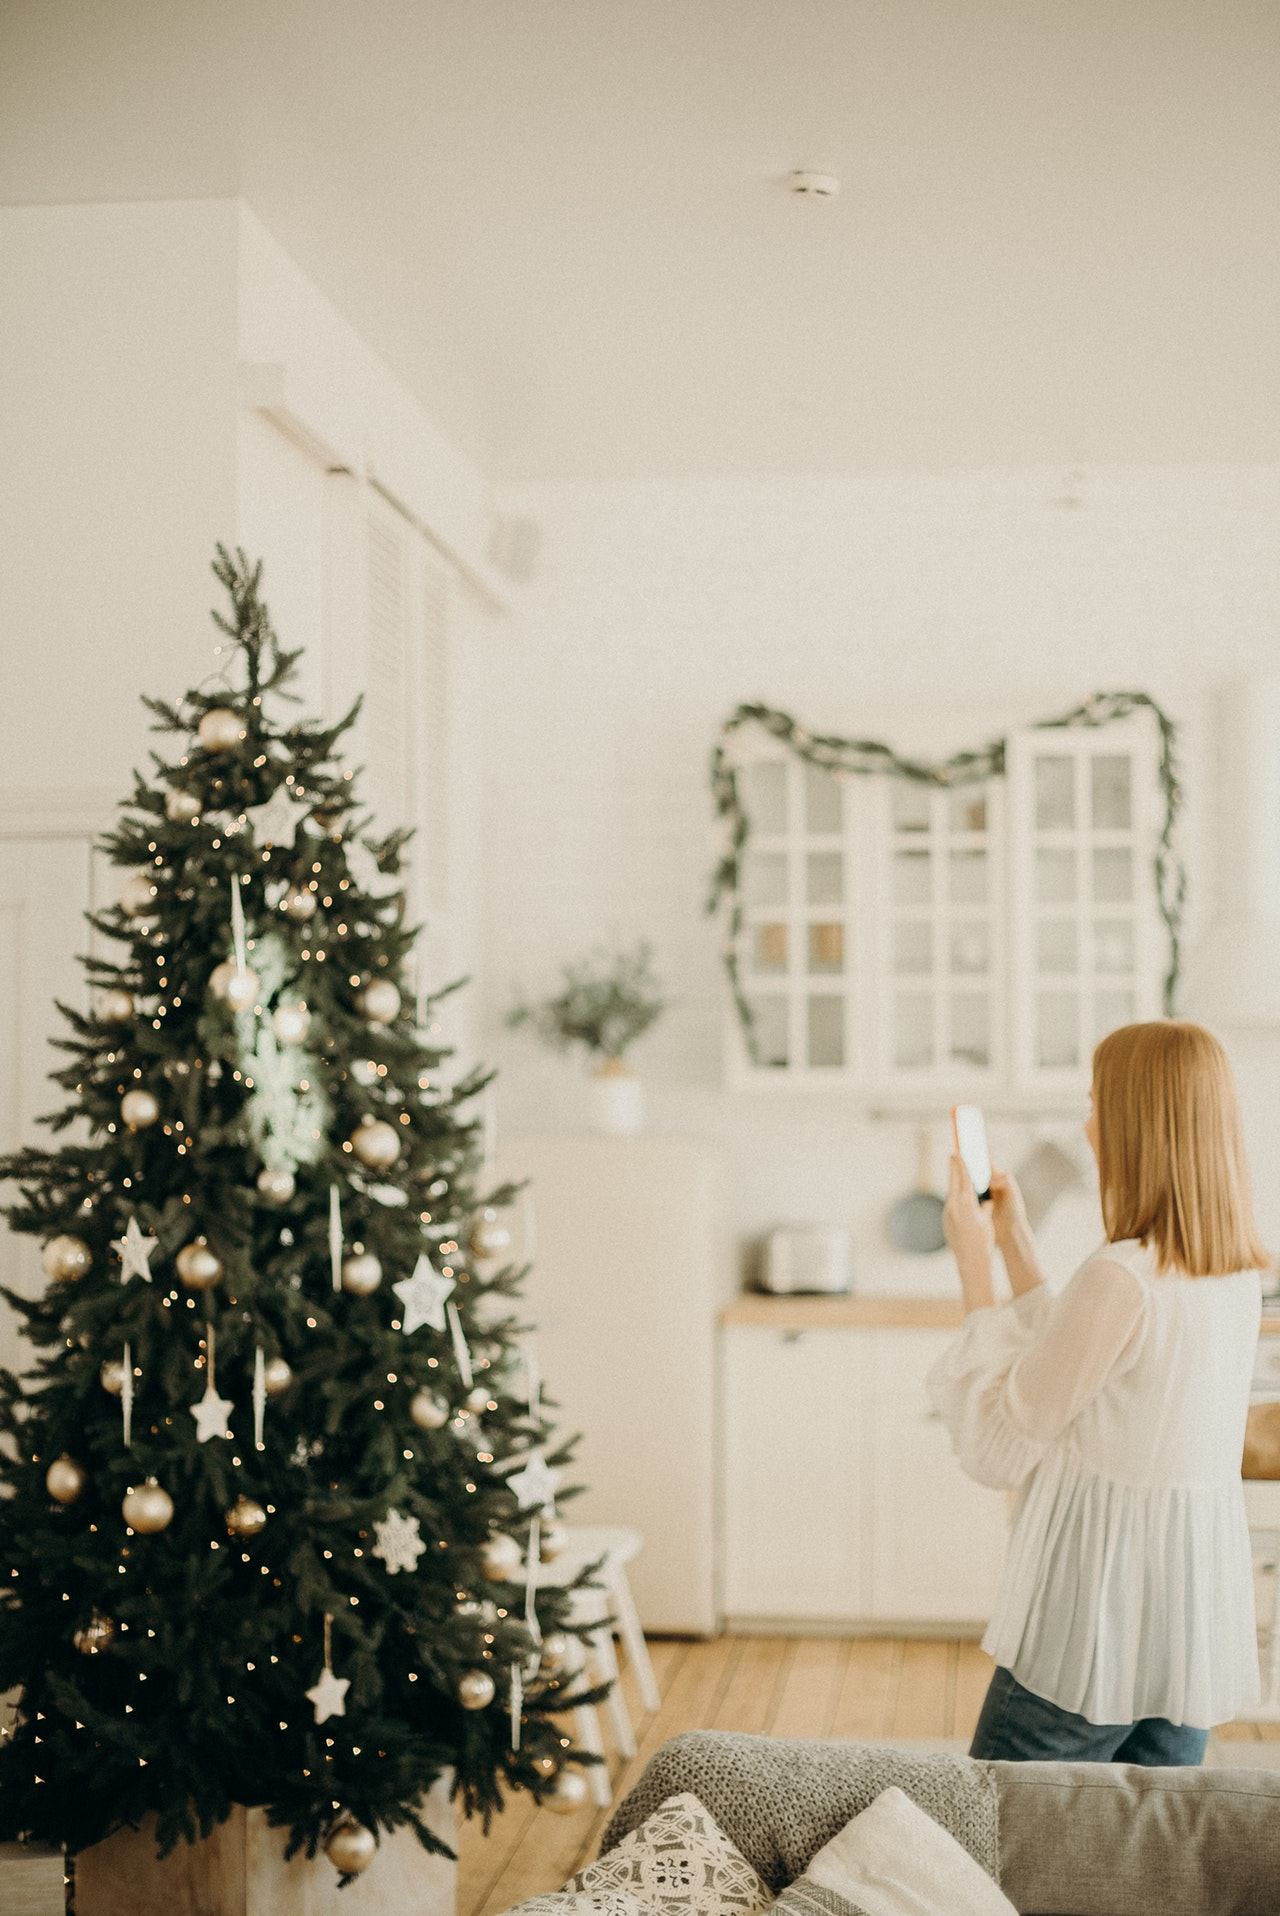 Woman taking photo of Christmas tree, Christmas captions for Instagram